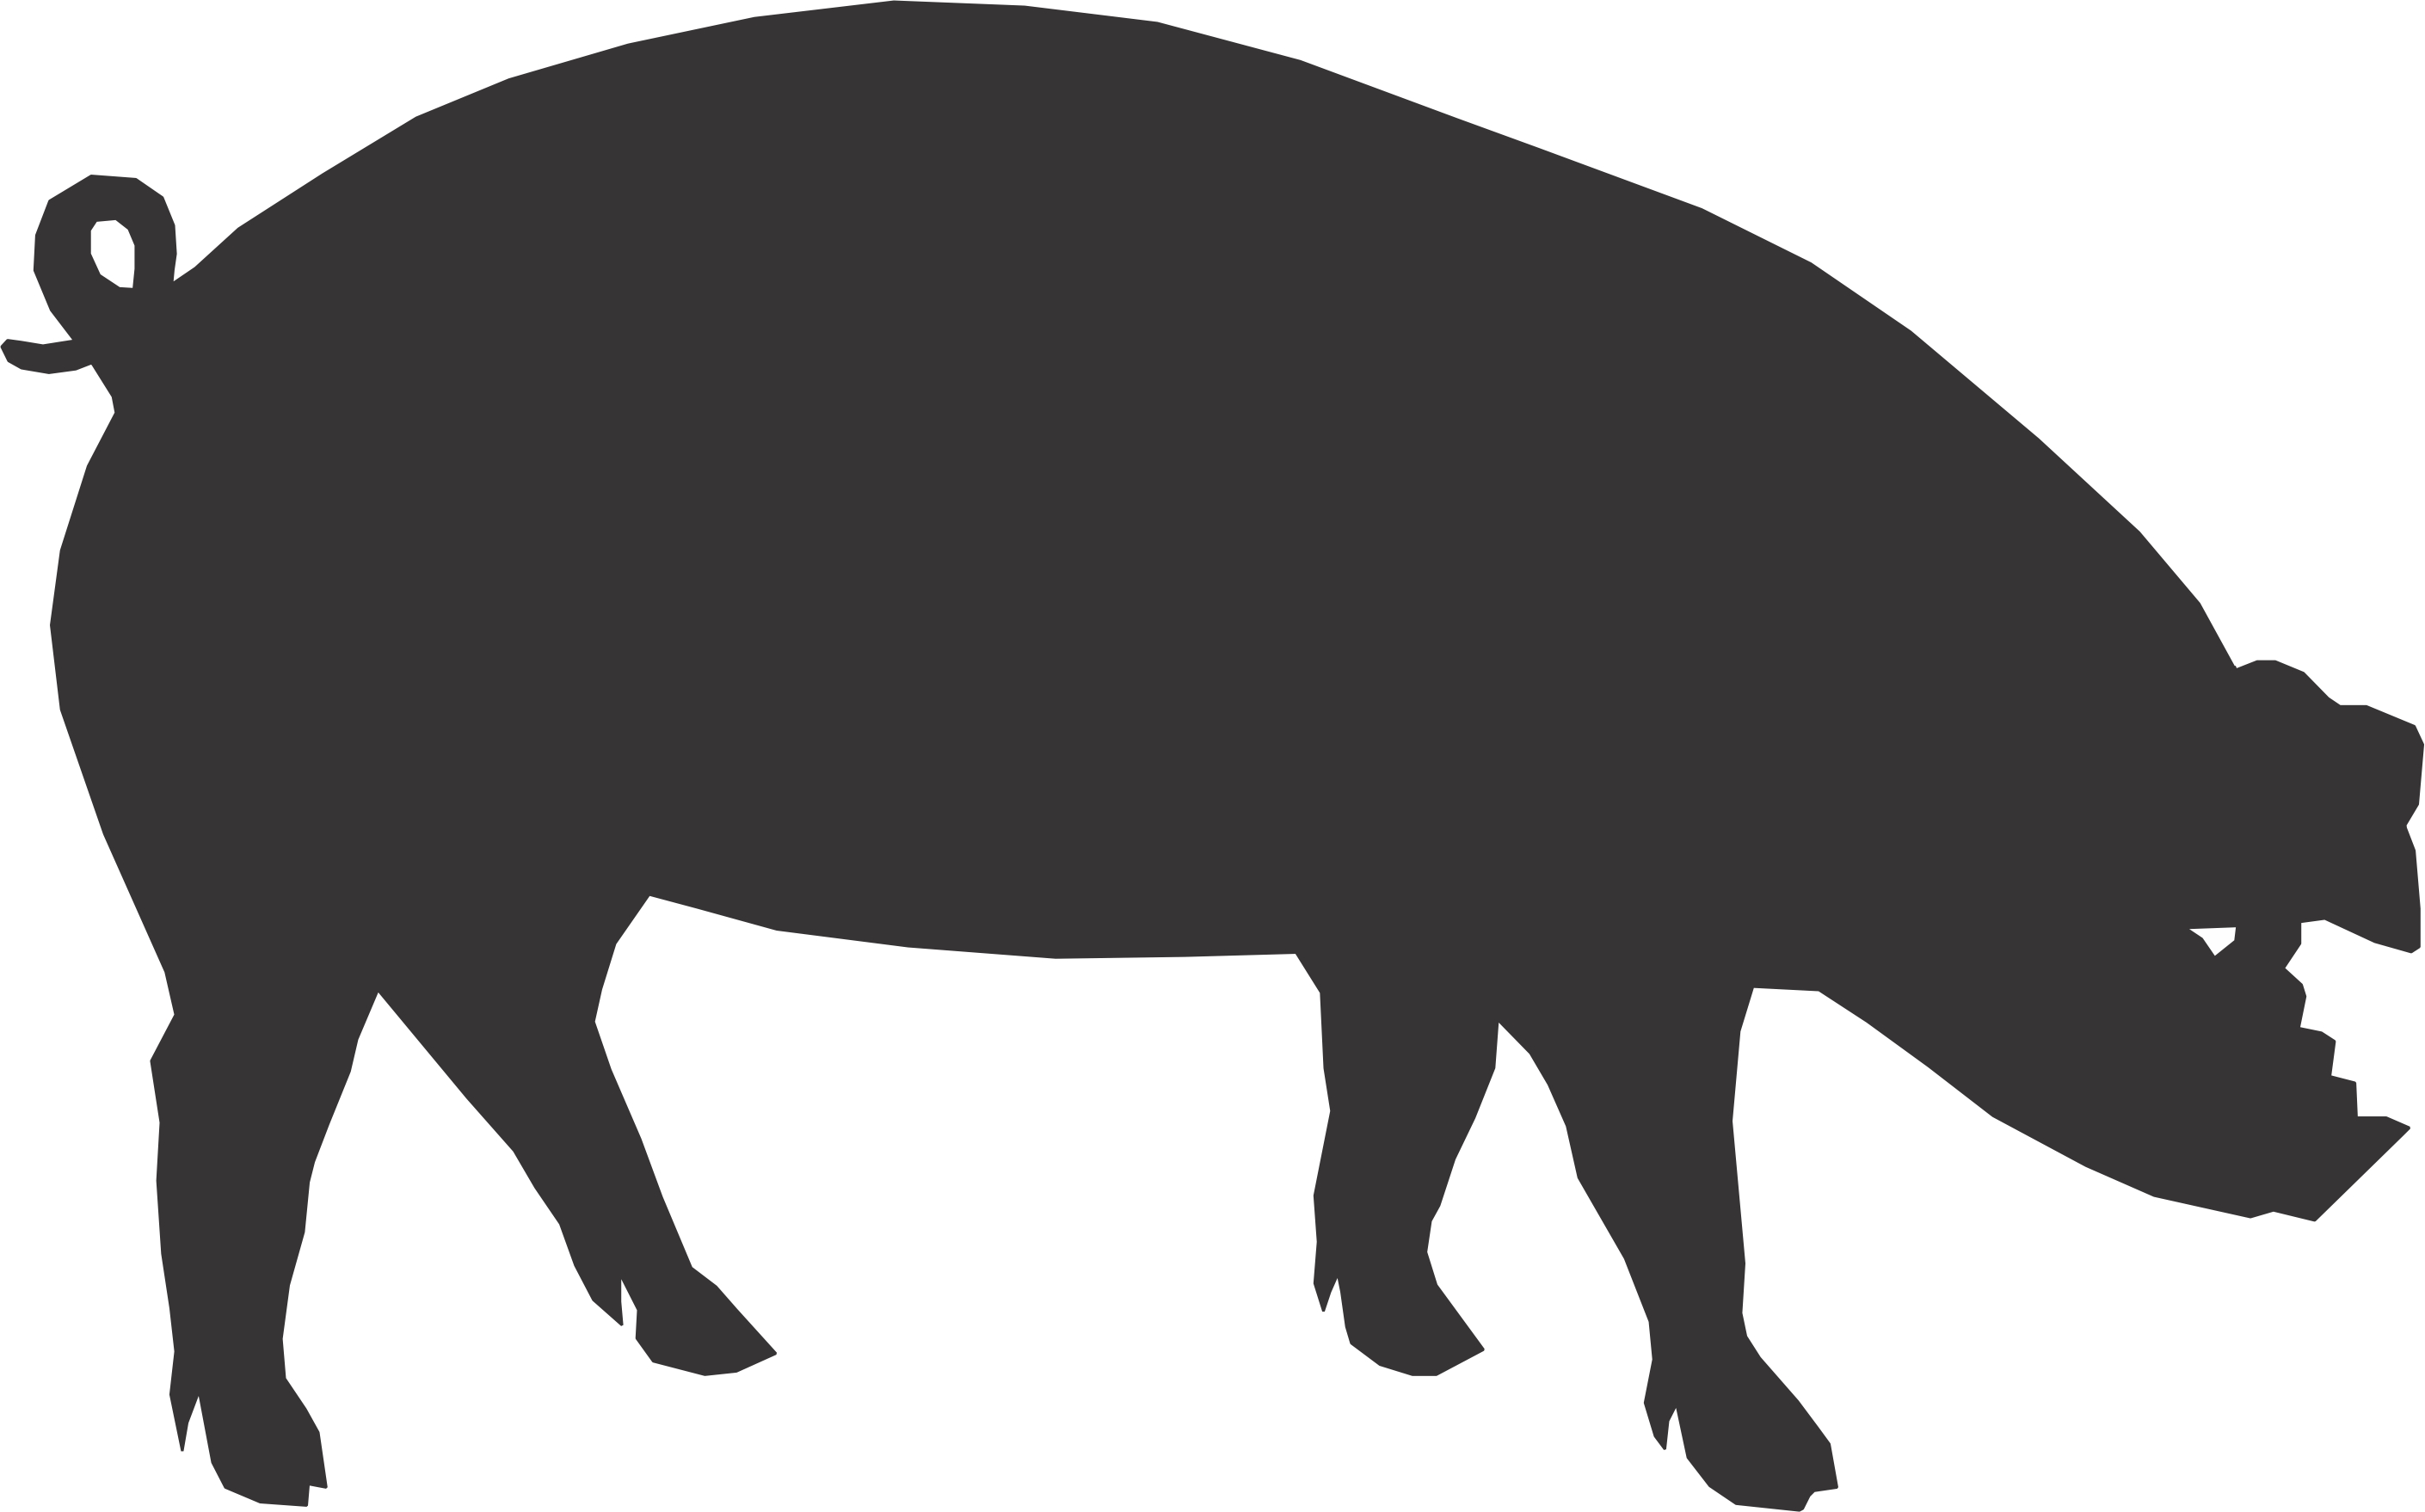 Show pig silhouette clipart transparent download 84+ Pig Silhouette Clip Art | ClipartLook transparent download